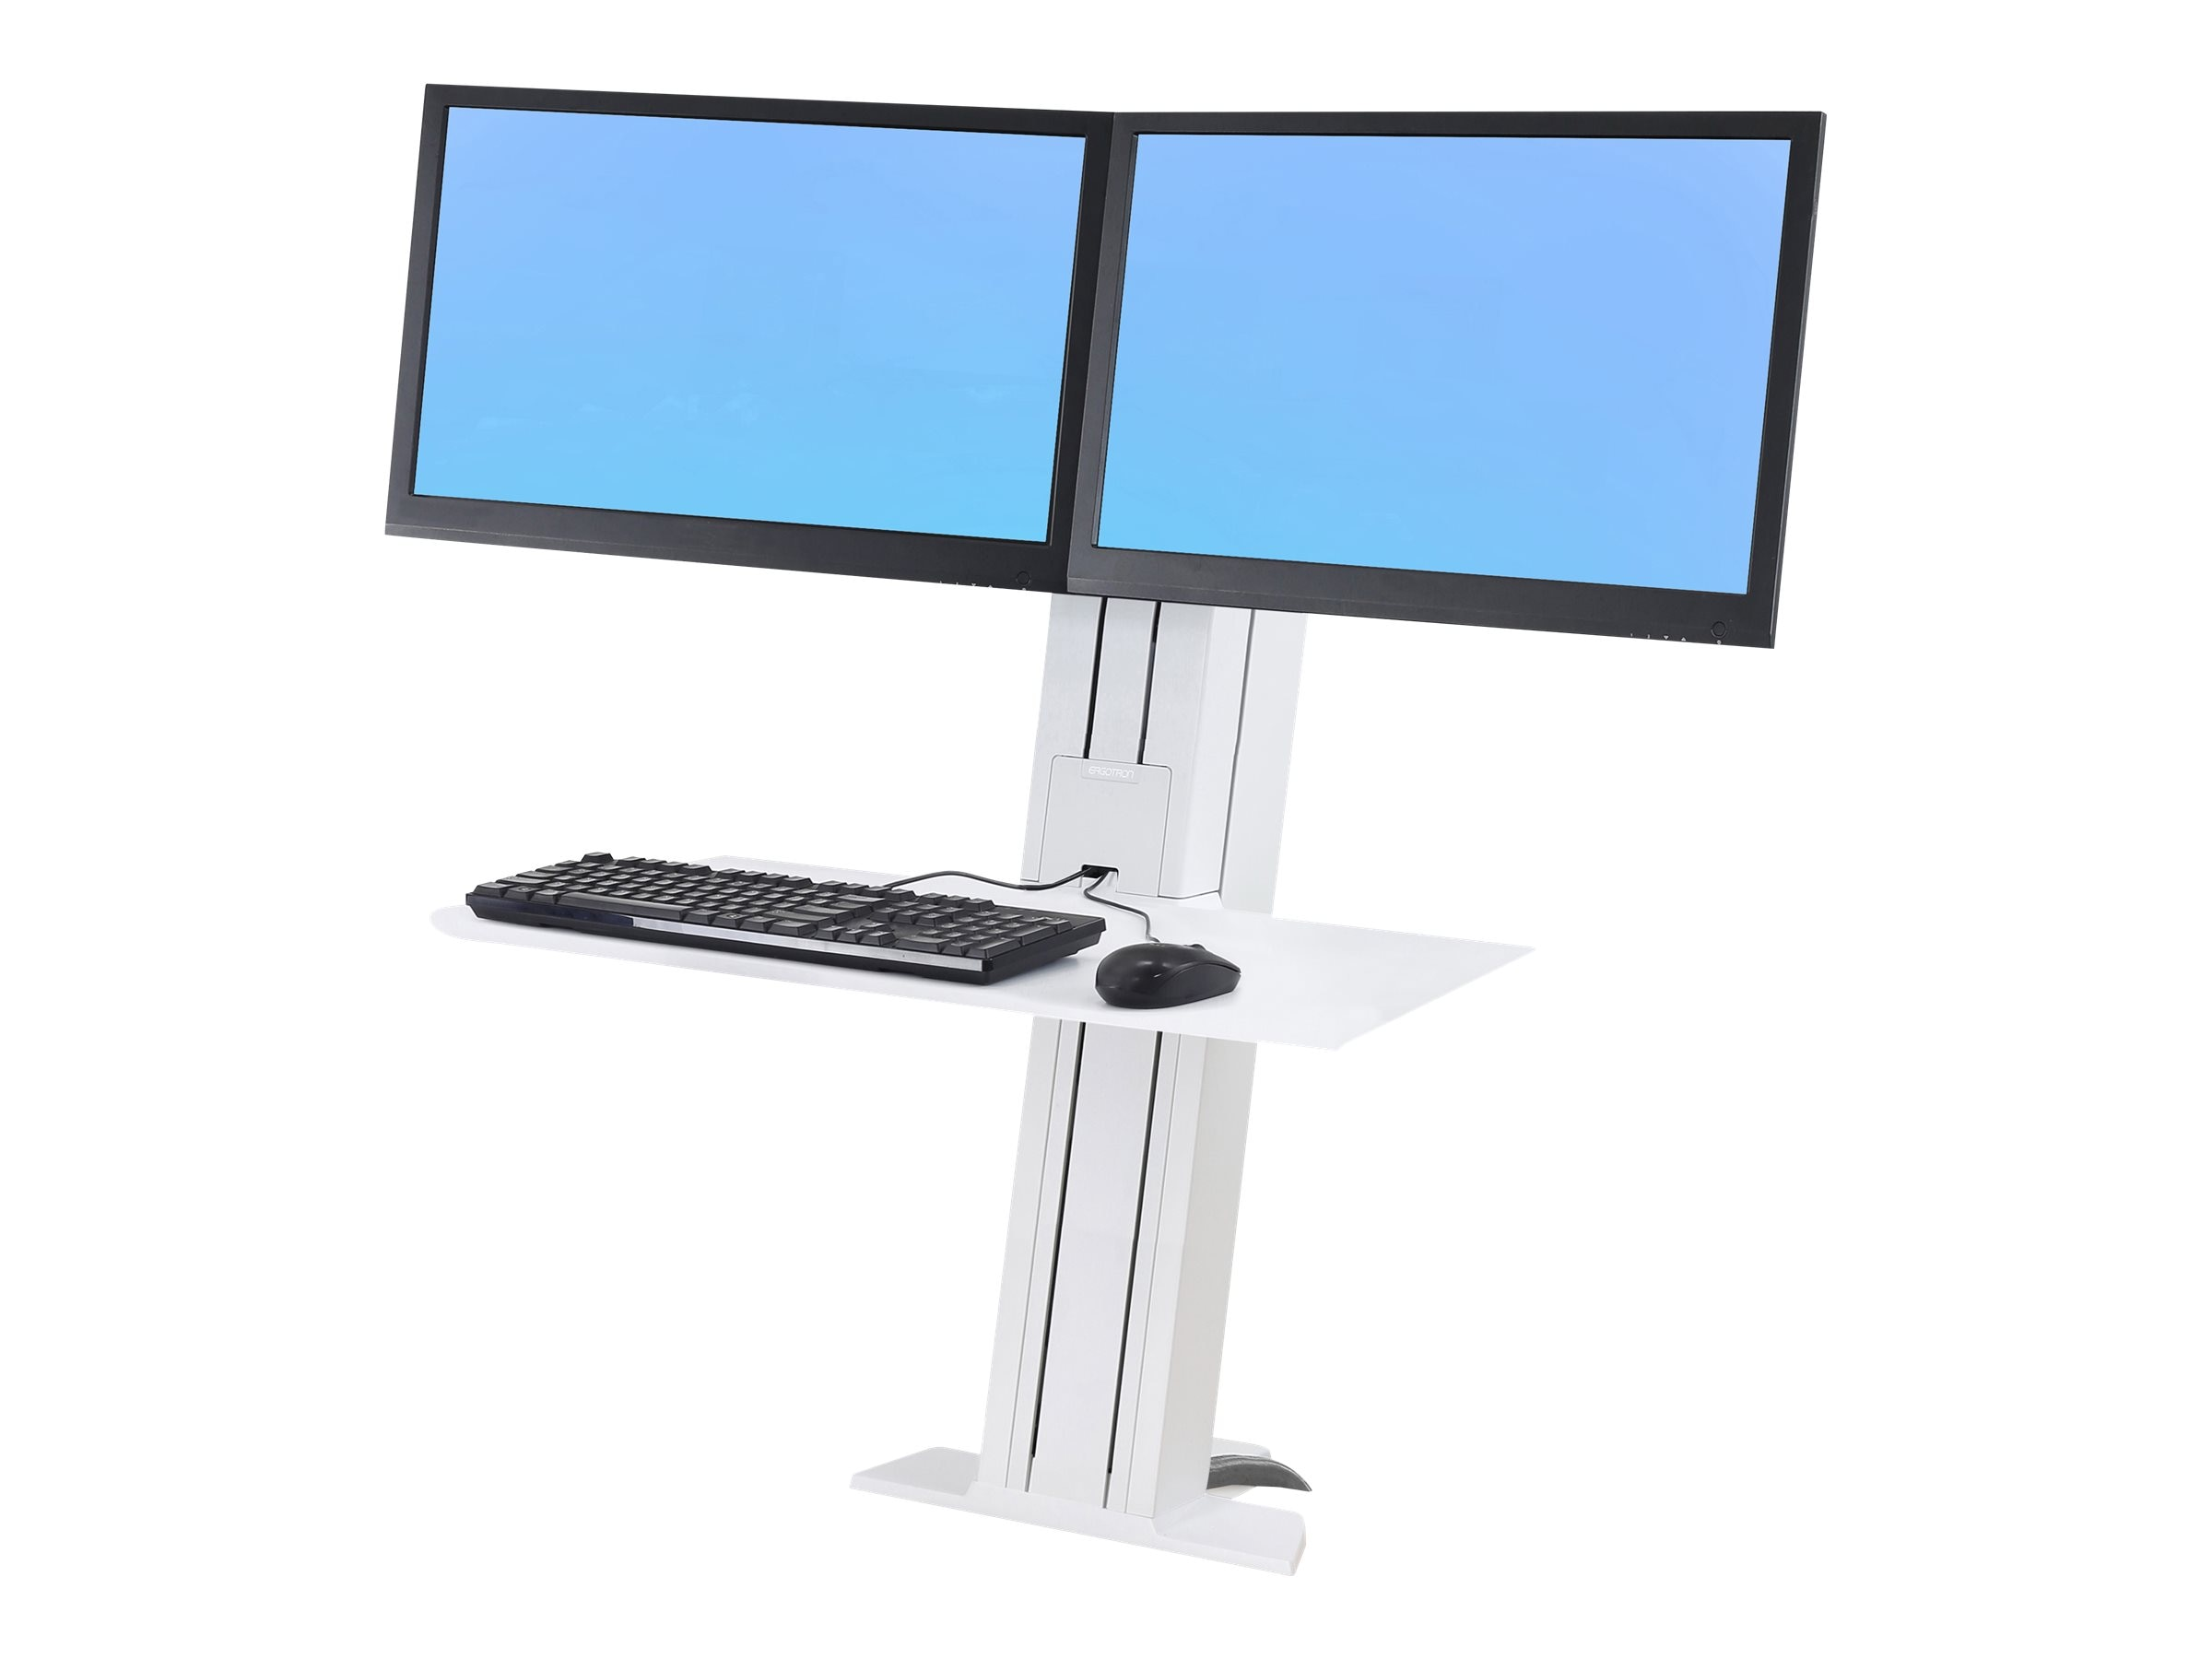 Ergotron WorkFit-SR, Dual Monitor, Sit-Stand Desktop Workstation, Short Surface, White, 33-419-062